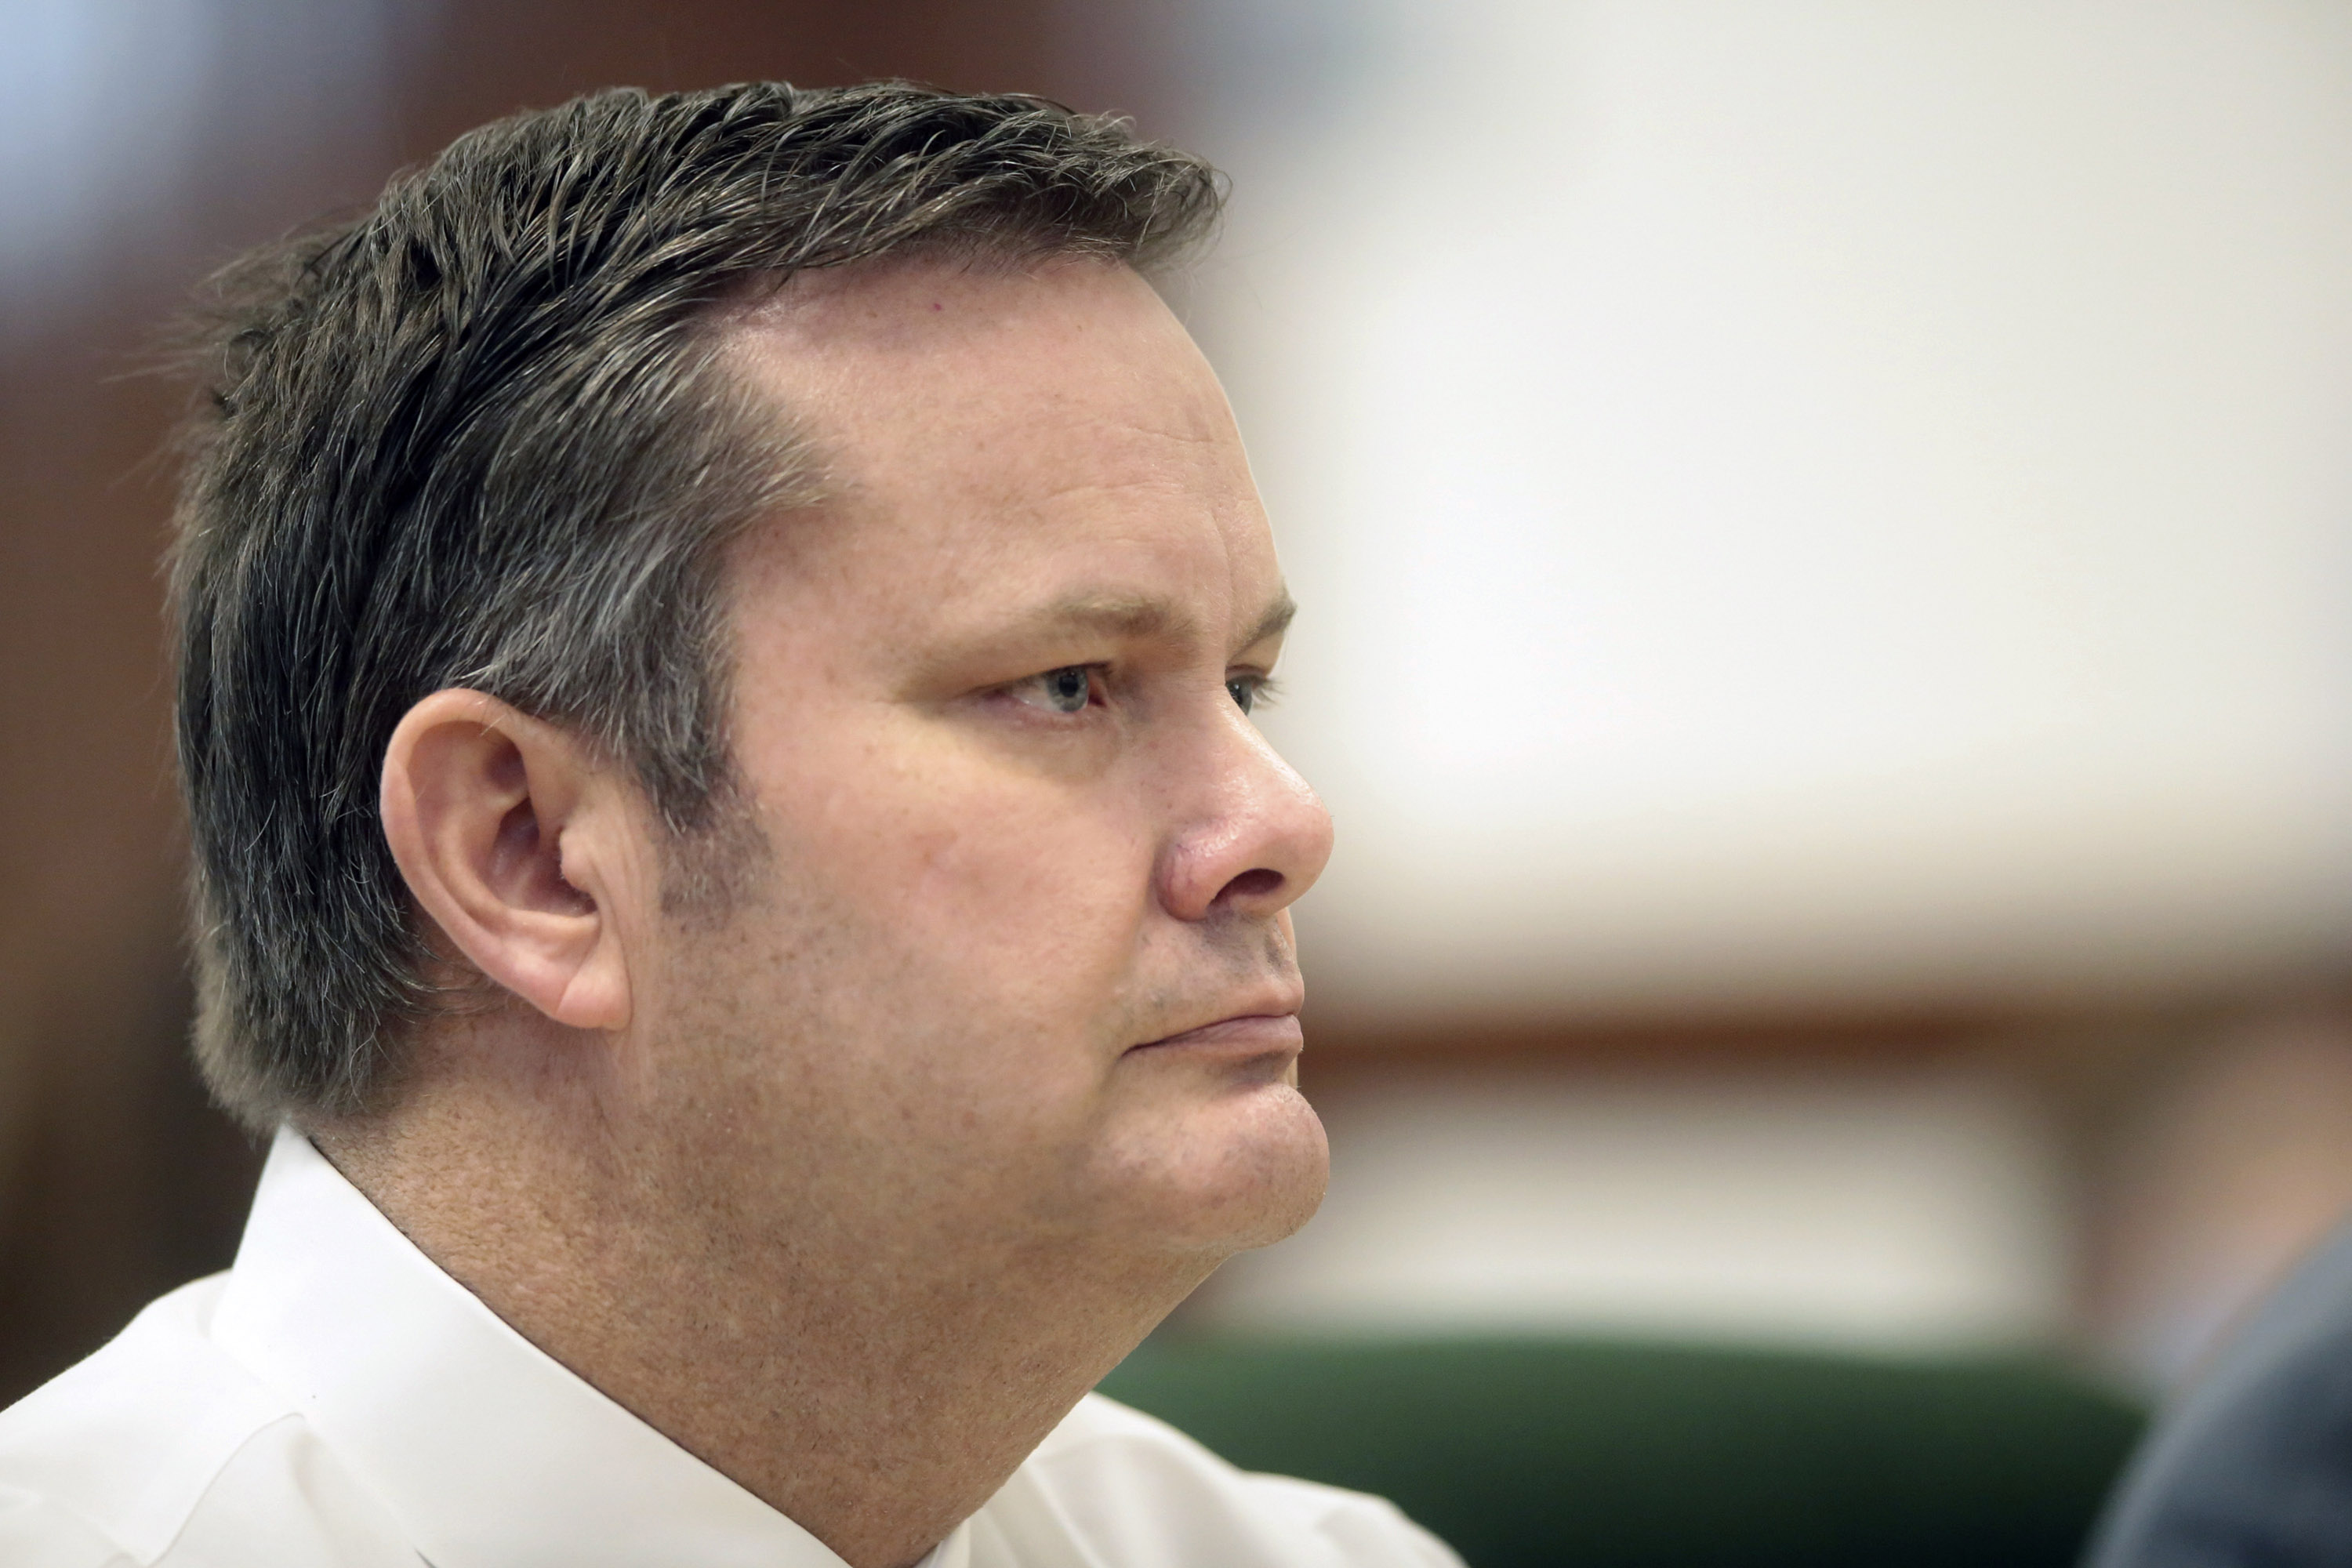 Chad Daybell appeared in a court hearing in St. Anthony, Idaho.